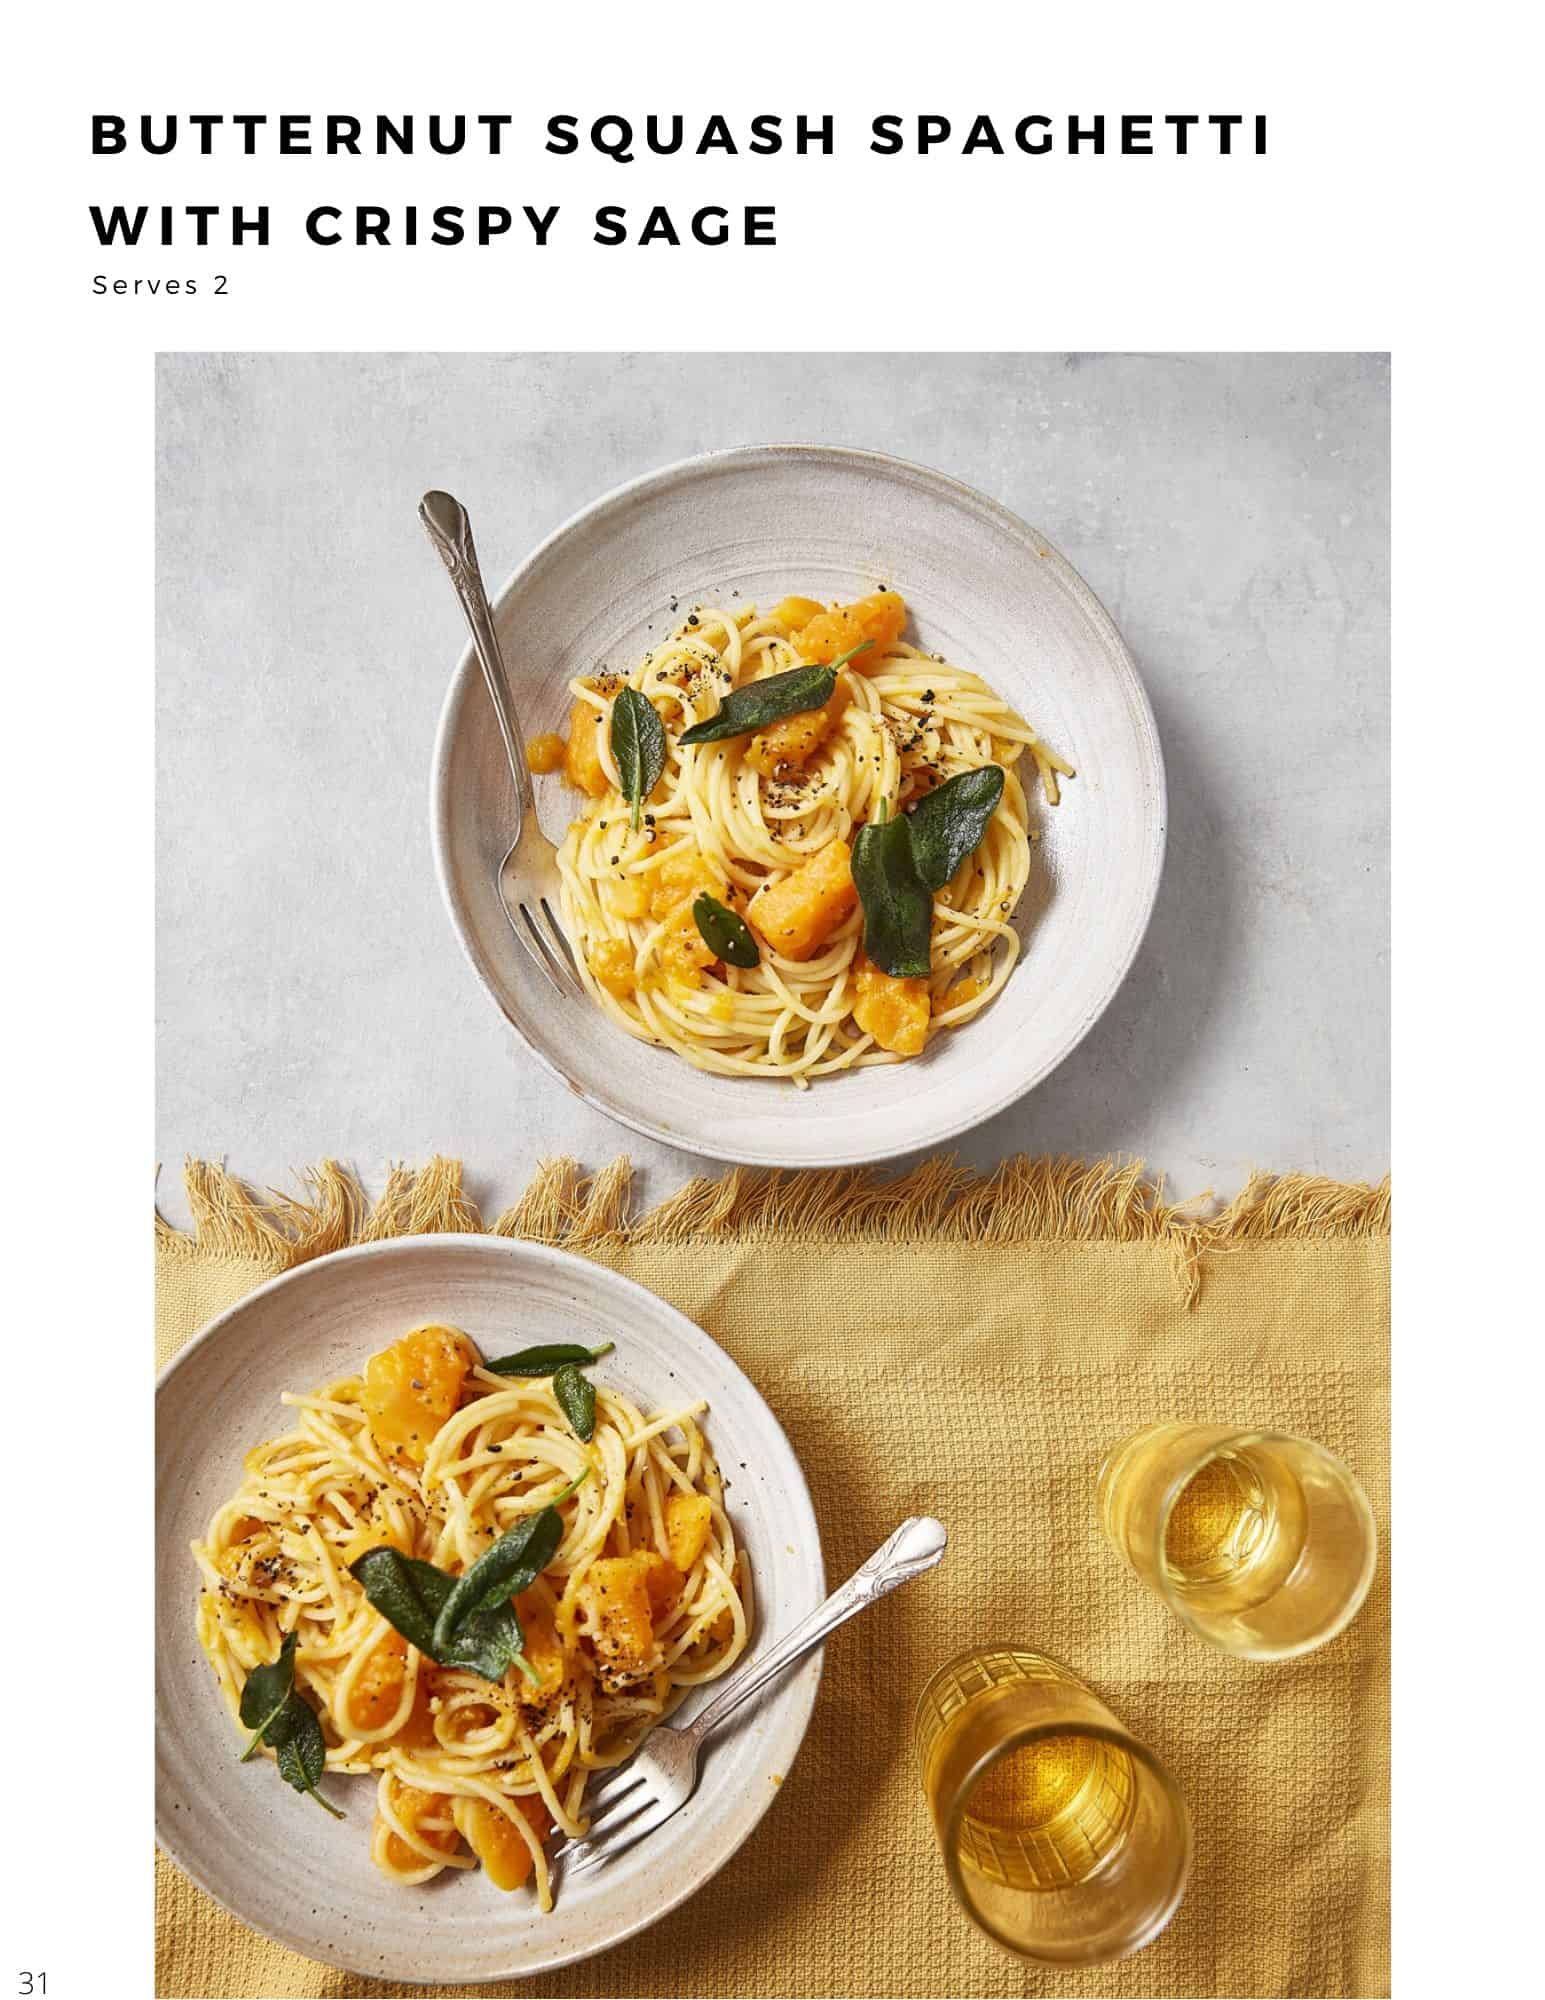 30 minute plant based recipes butternut squash and sage spaghetti